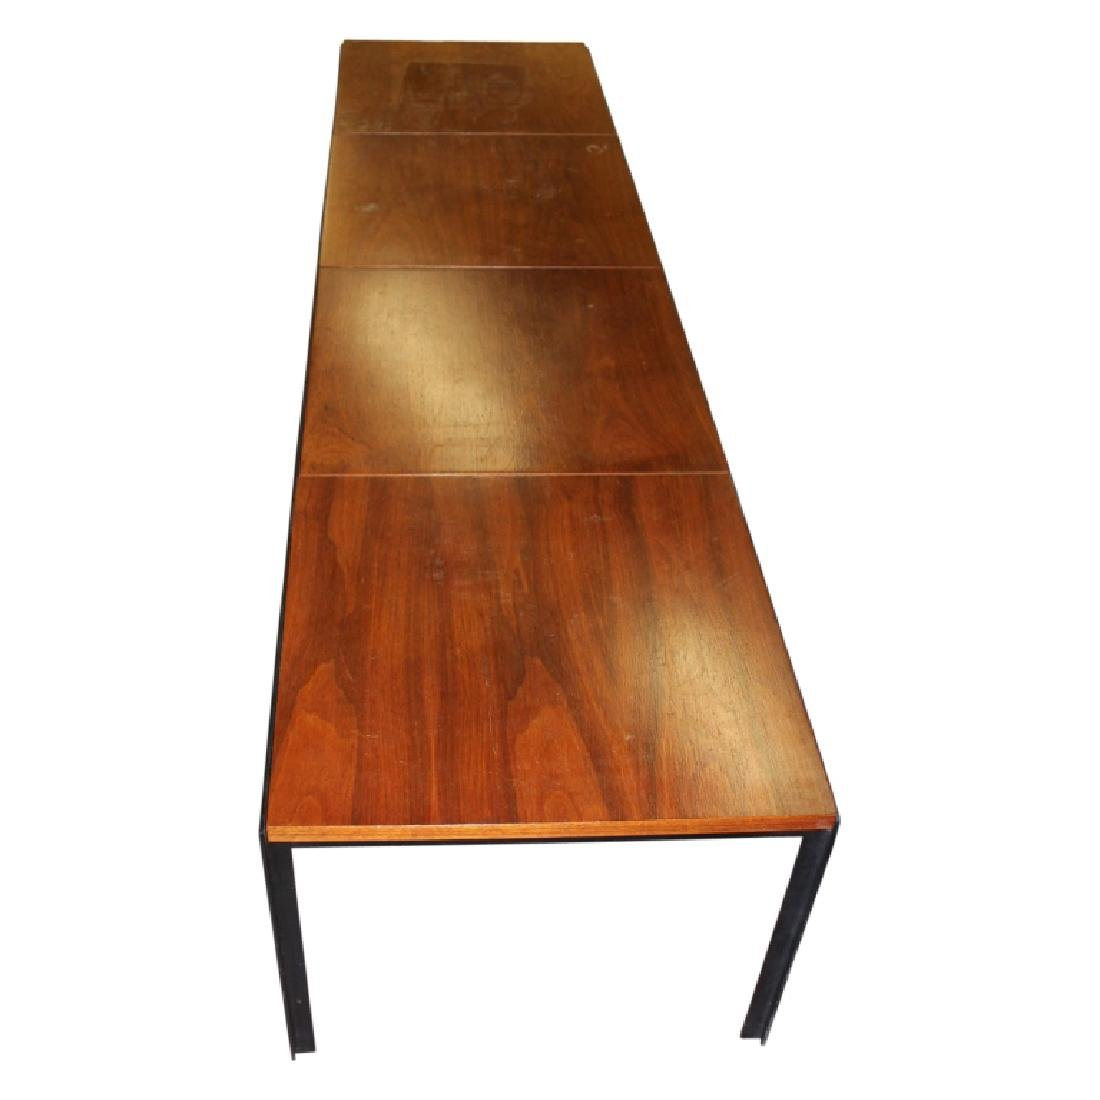 Florence Knoll Period MCM Table Bench